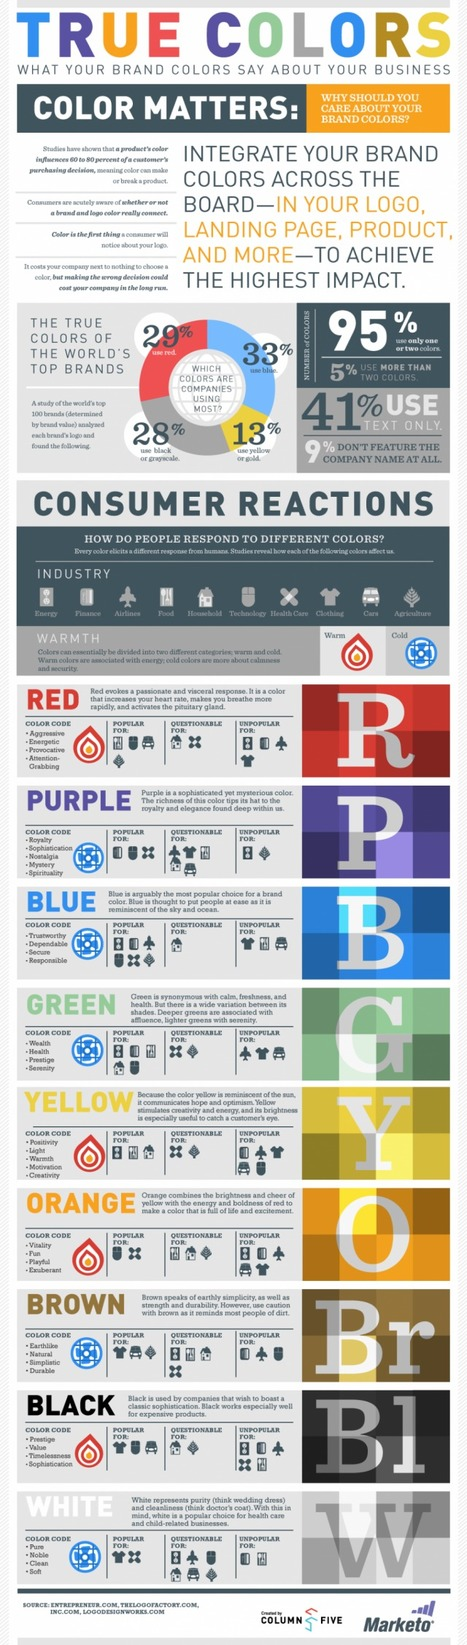 How Your Brand Colors Impact Your Audience | Curation, Social Business and Beyond | Scoop.it